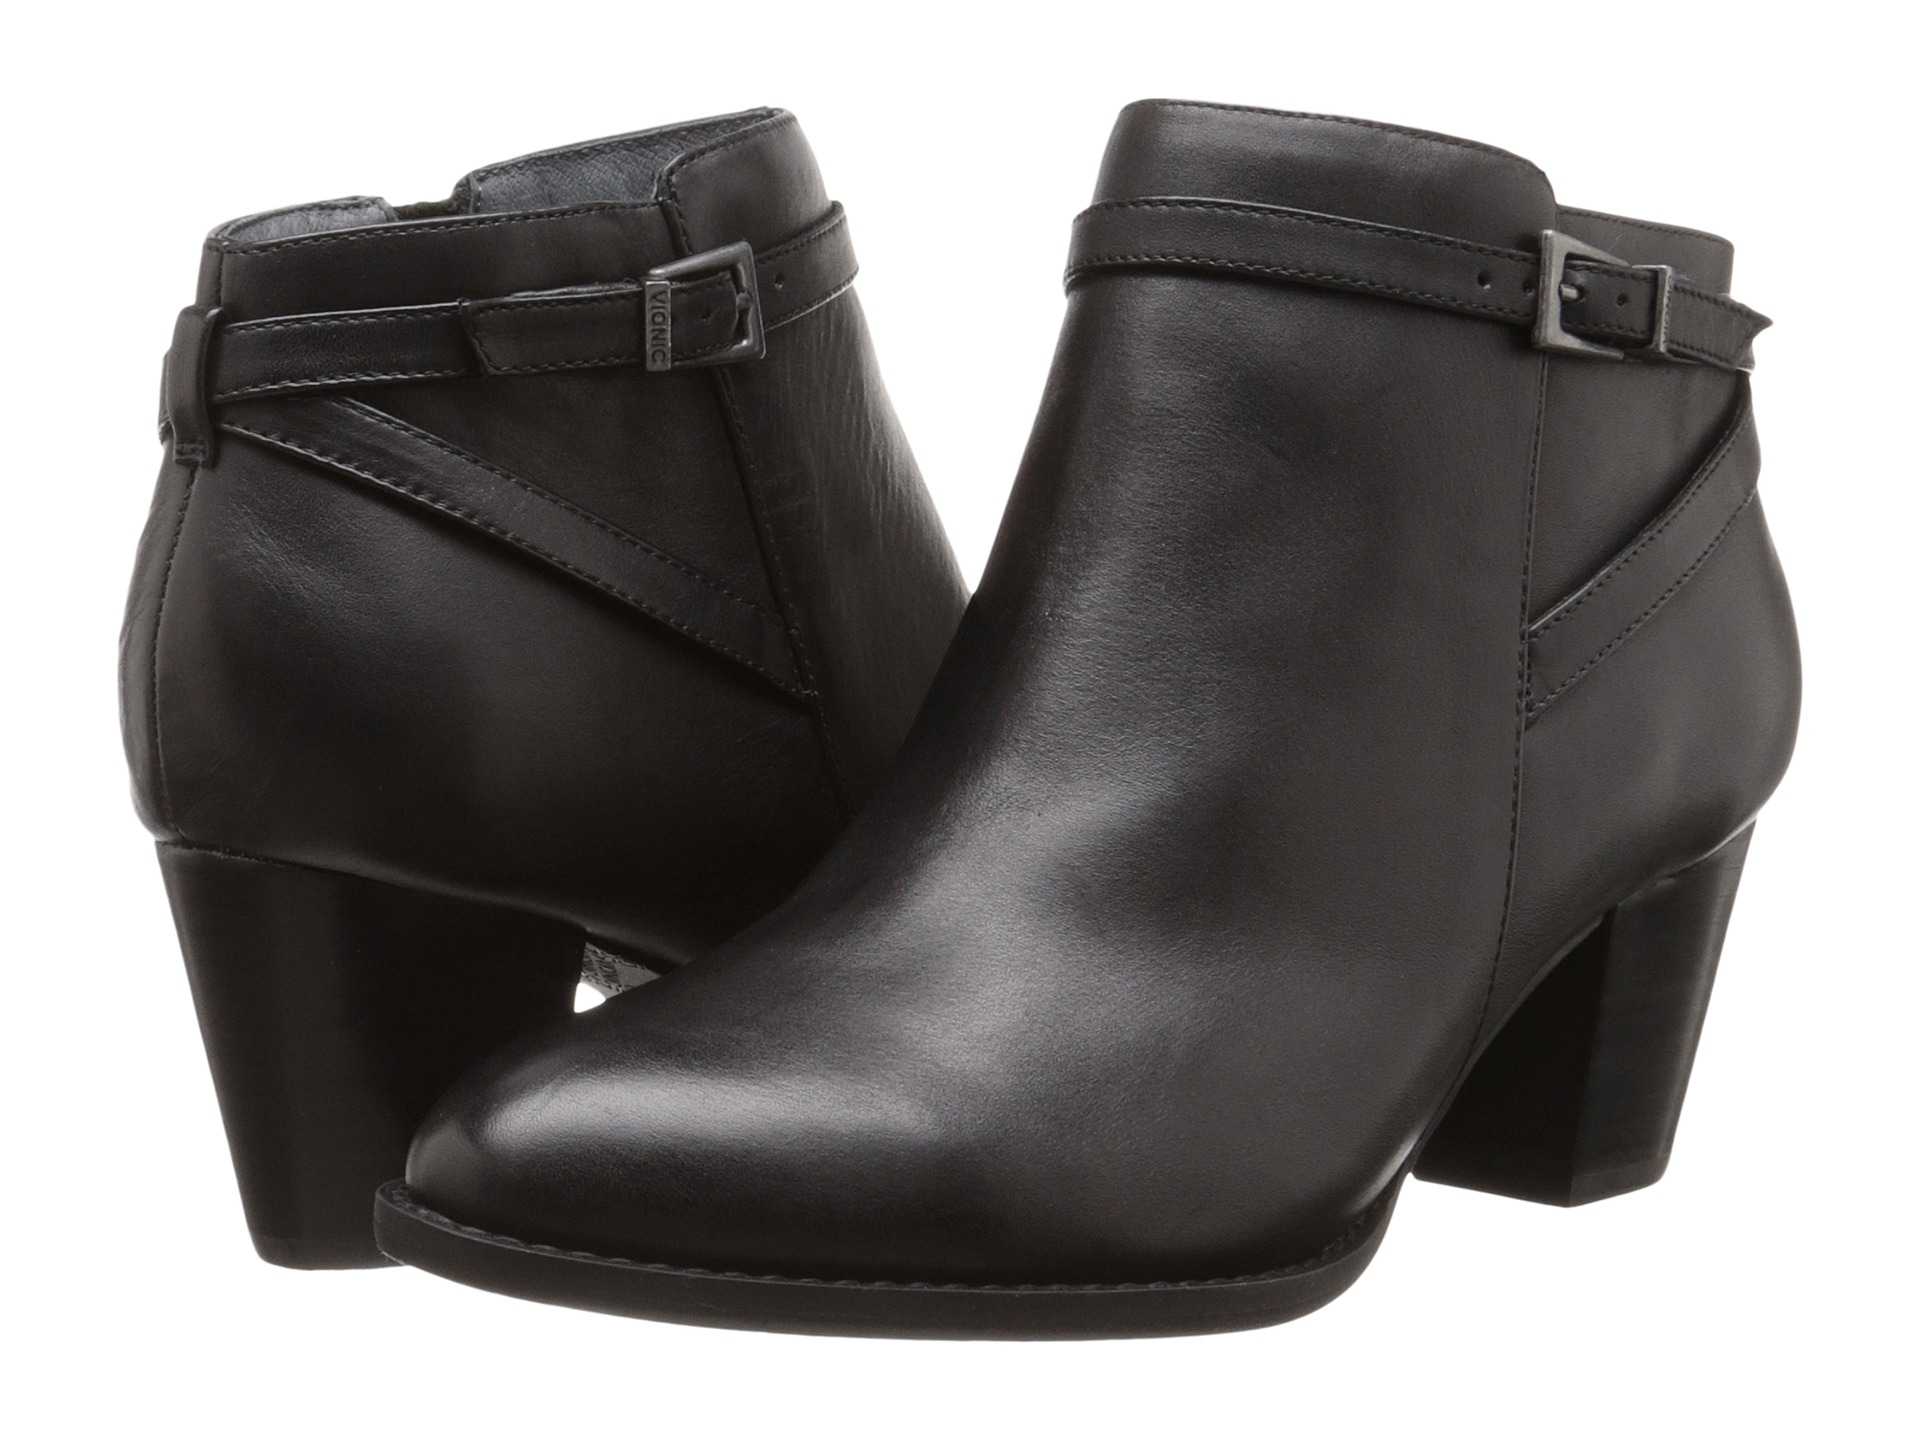 Ankle Boots and Booties for Men and Women | Zappos.com